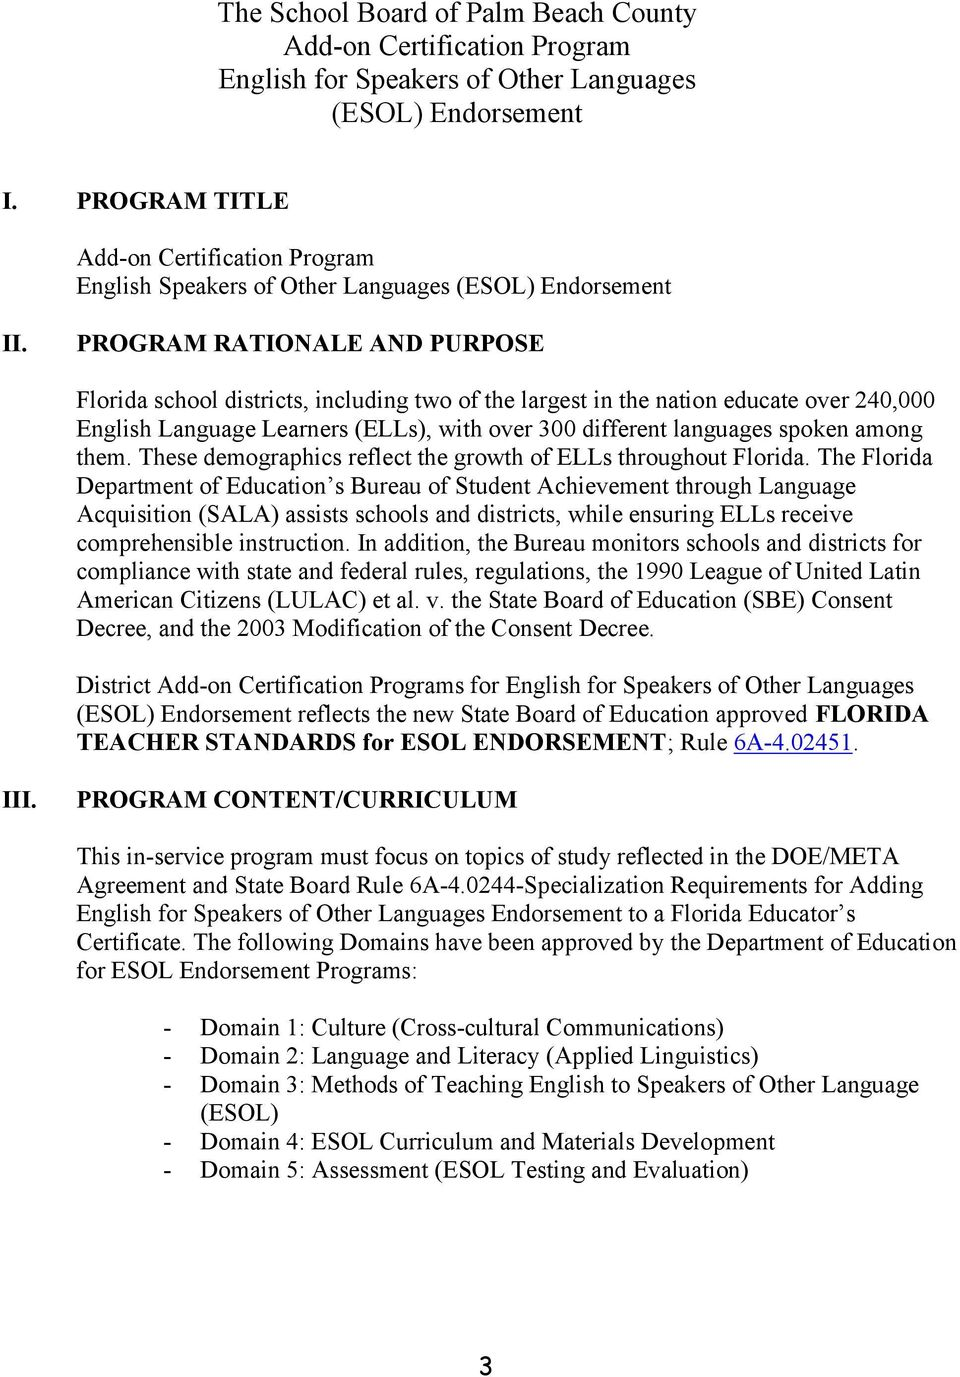 PROGRAM RATIONALE AND PURPOSE Florida school districts, including two of the largest in the nation educate over 240,000 English Language Learners (ELLs), with over 300 different languages spoken